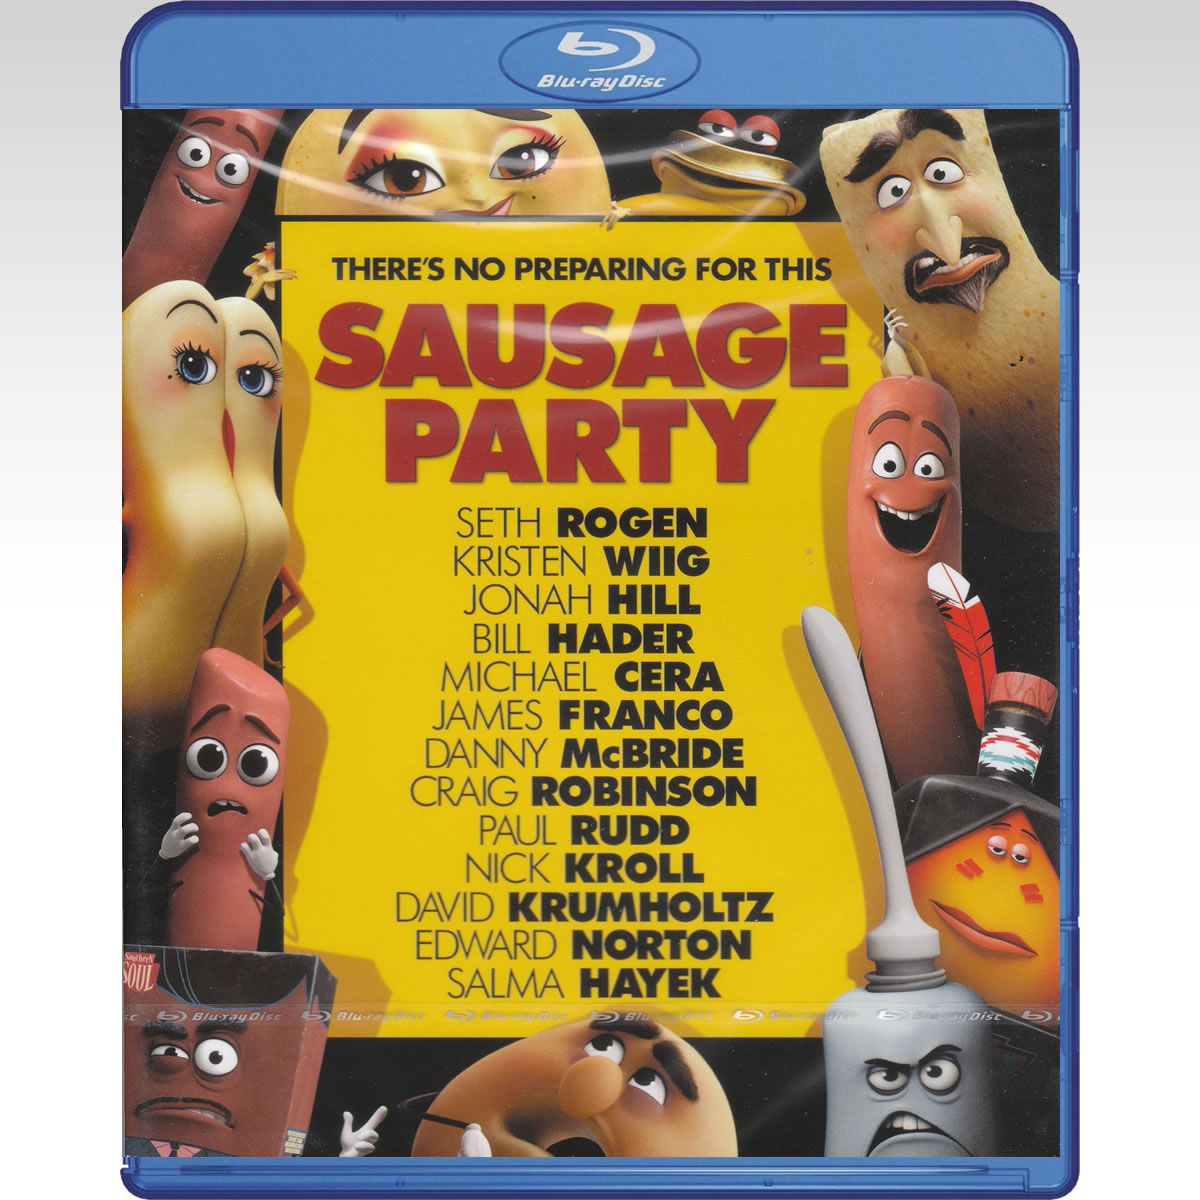 SAUSAGE PARTY - ΠΑΡΤΙ ΜΕ ΛΟΥΚΑΝΙΚΑ (BLU-RAY)